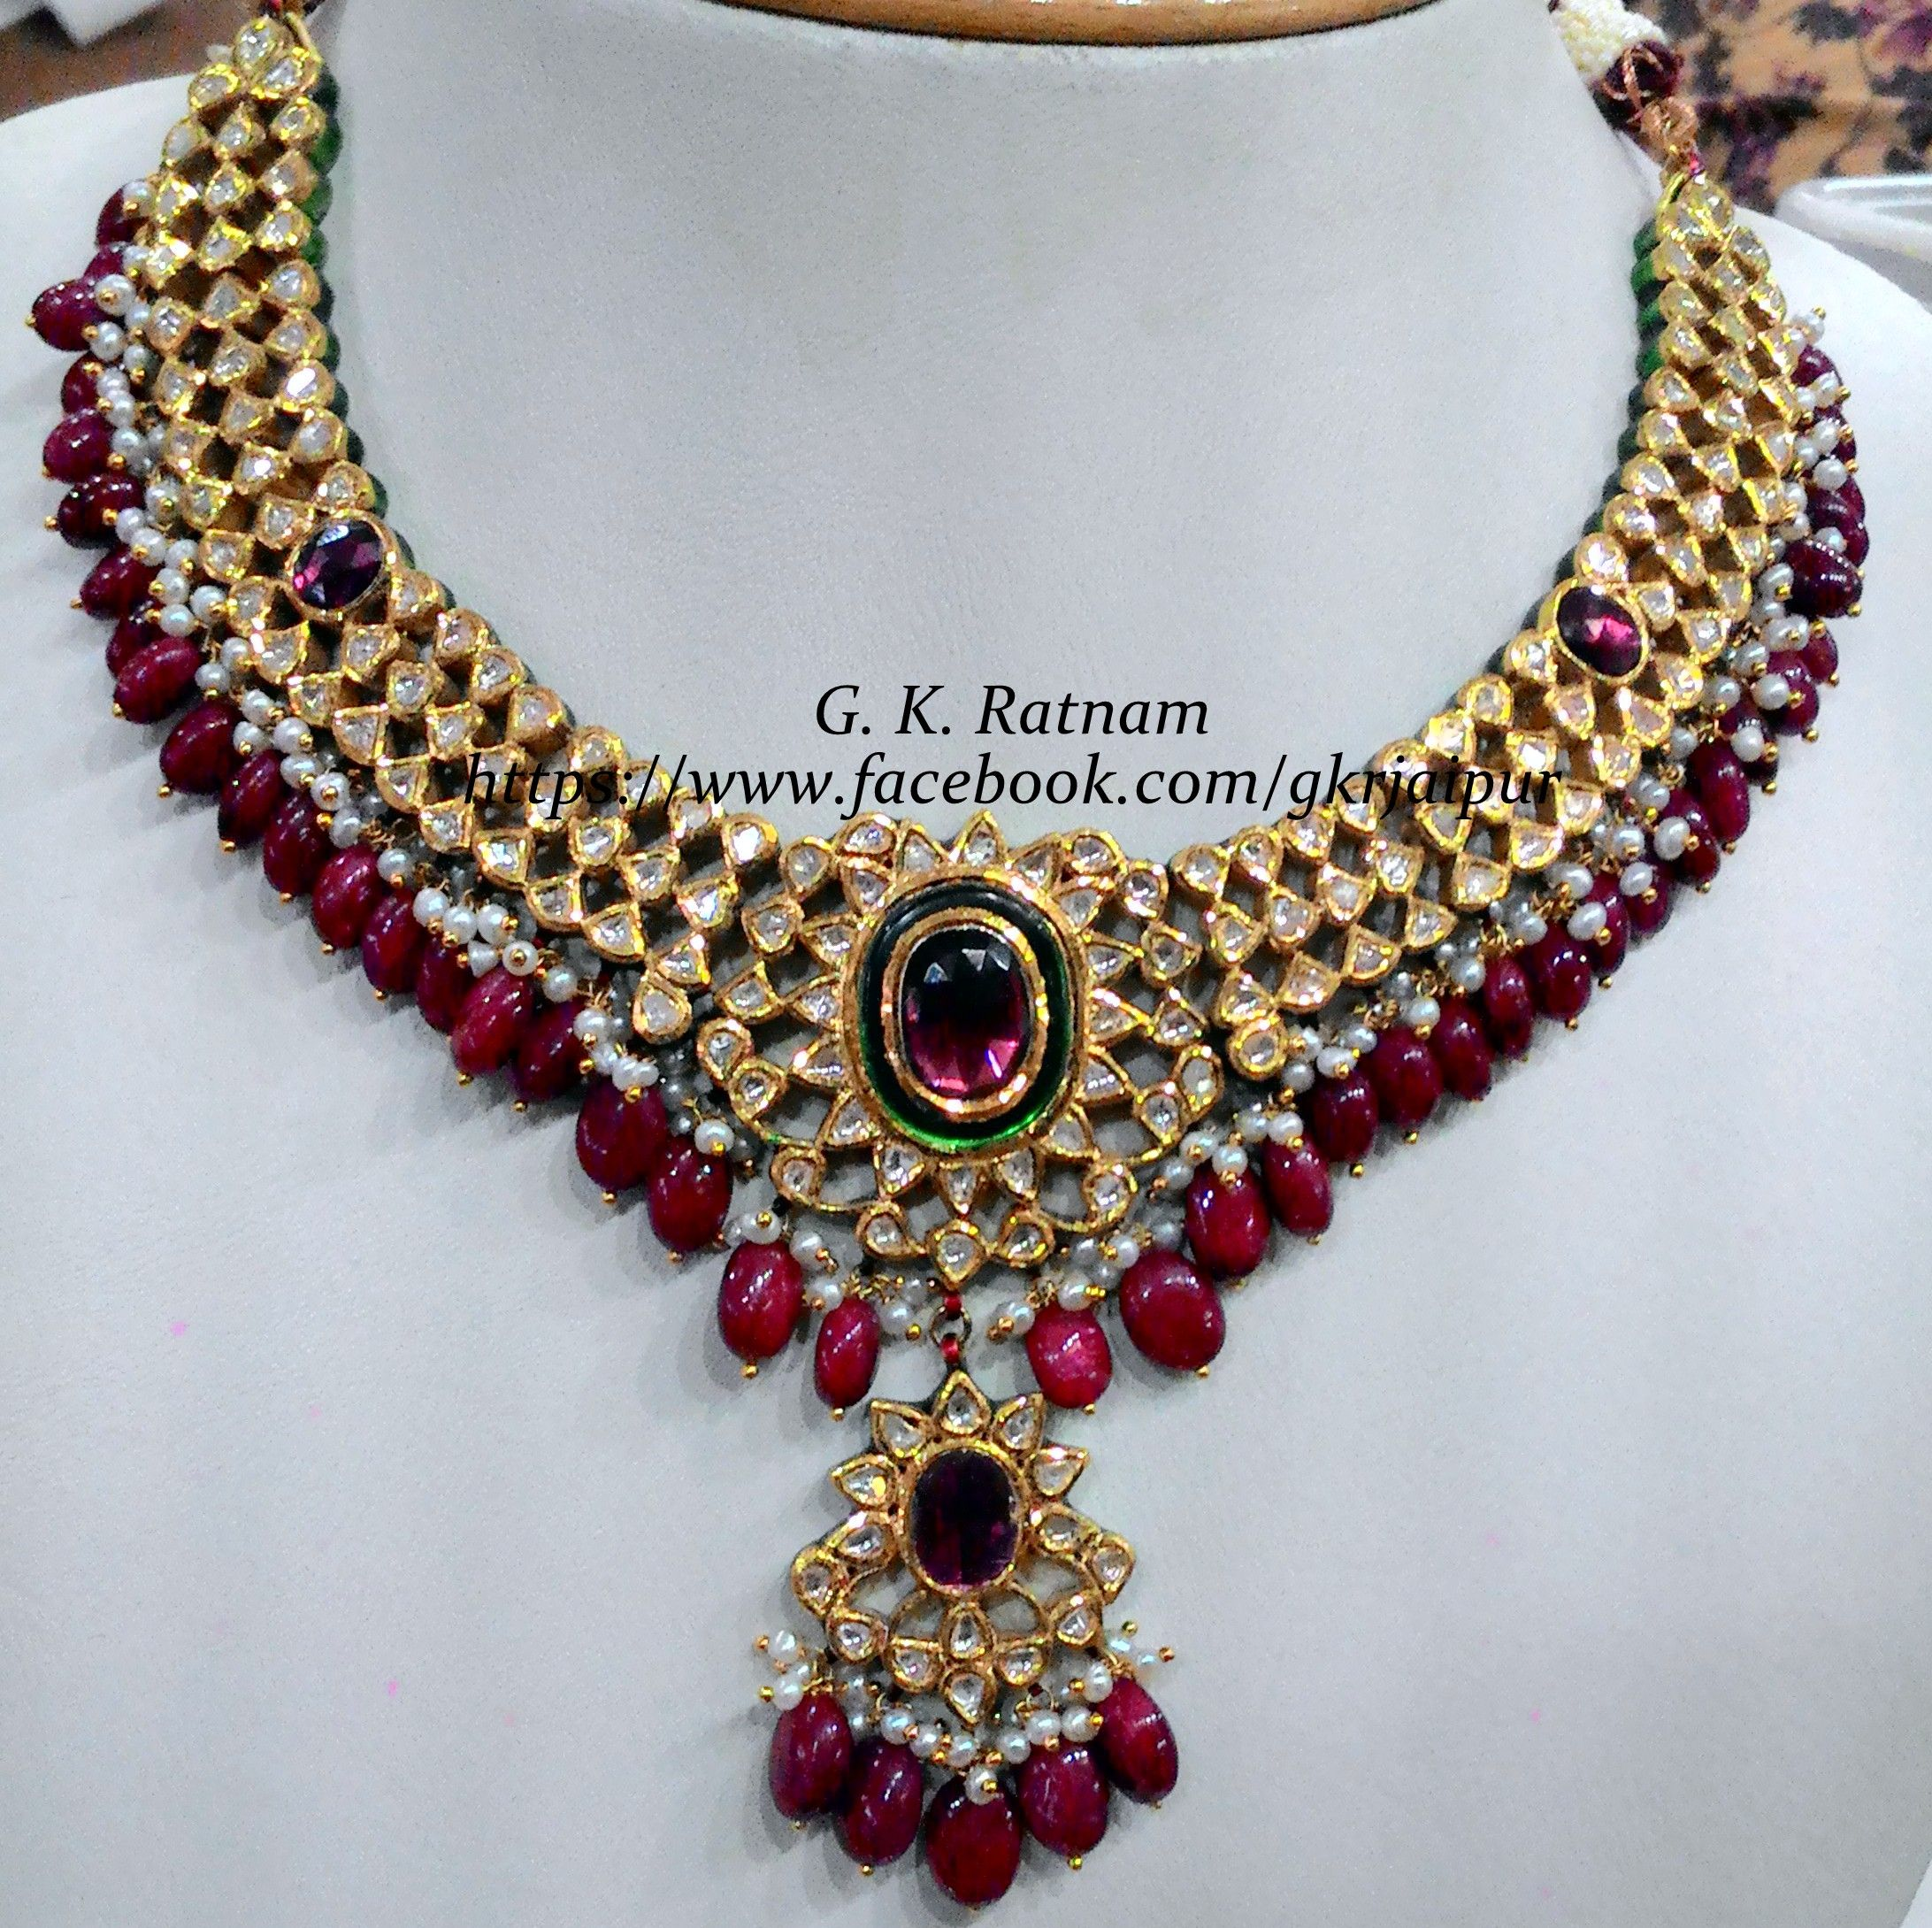 A gorgeous diamond polki necklace set with rubies